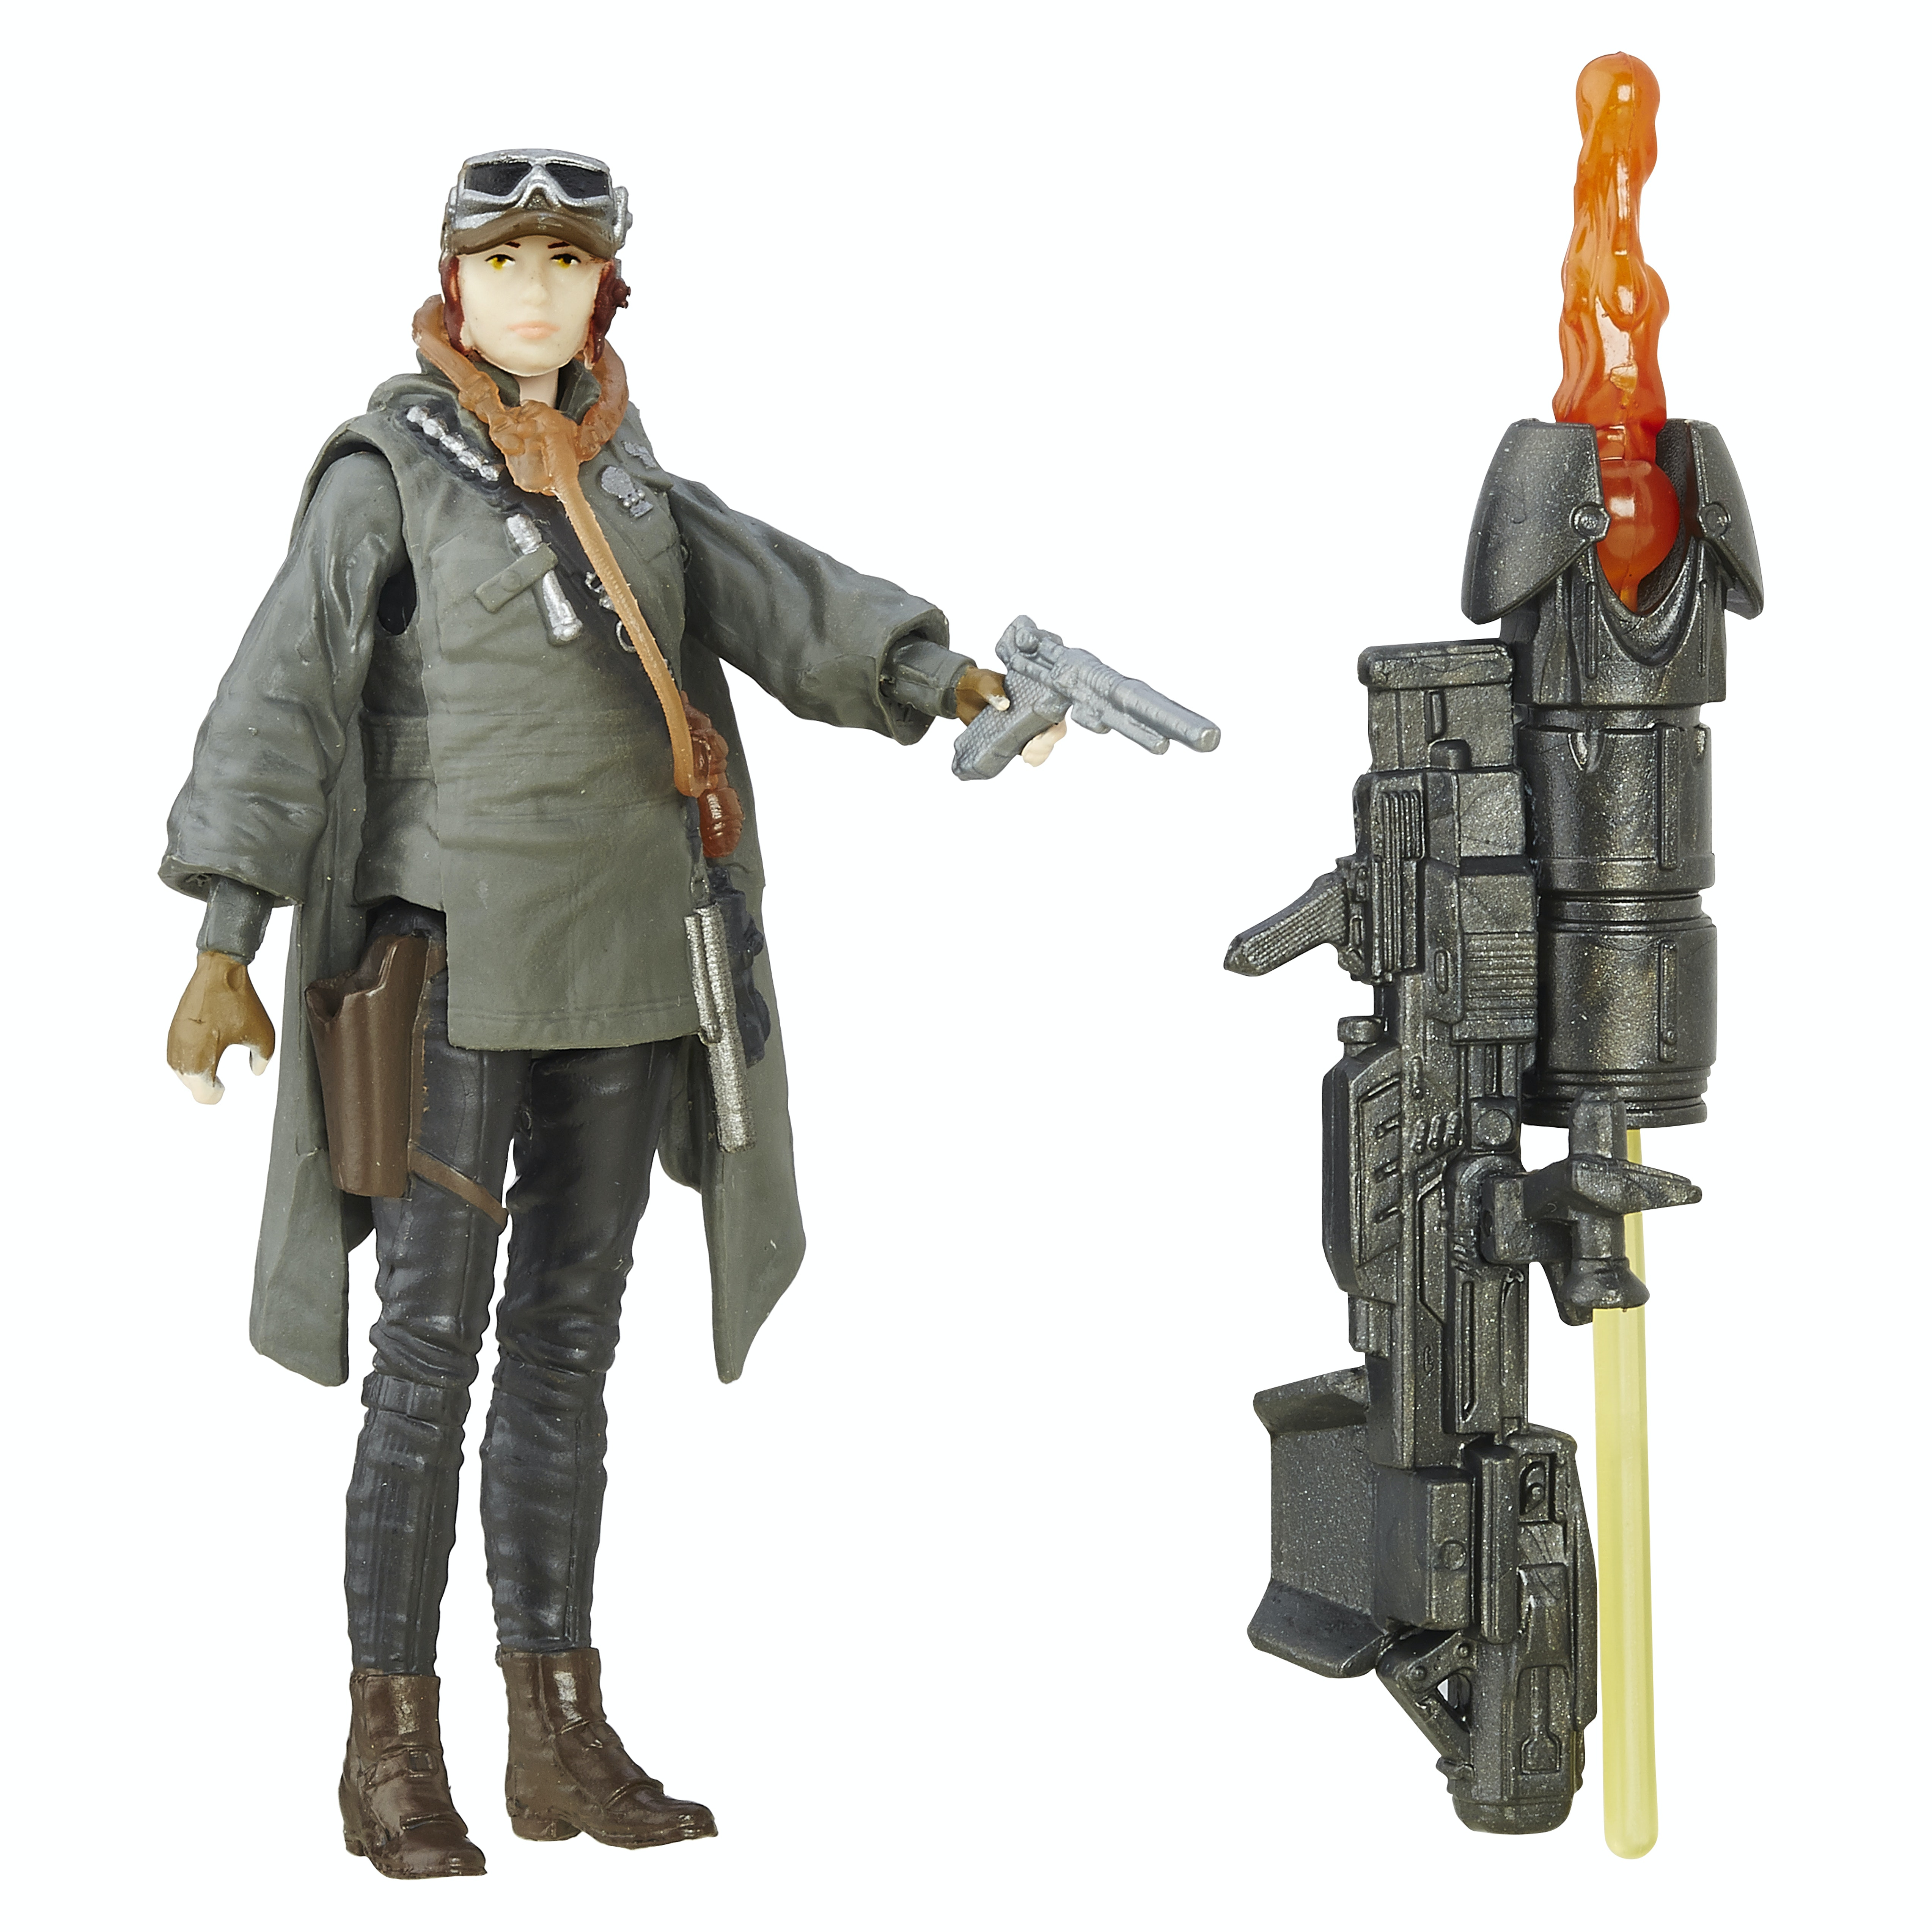 Behold Jyn's Eadu get-up in action figure form.